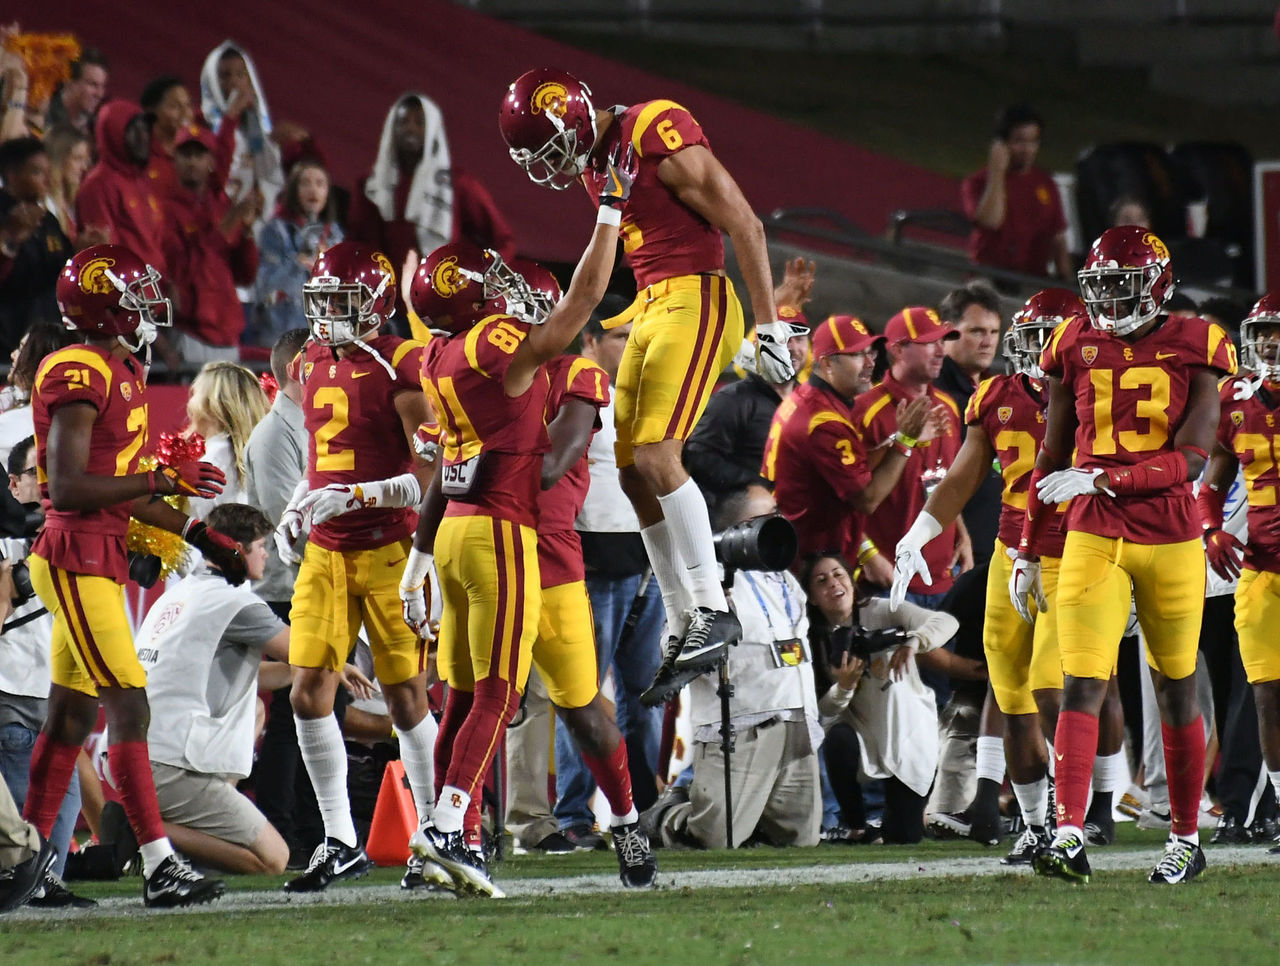 Cropped 2017 11 19t013028z 825242970 nocid rtrmadp 3 ncaa football ucla at southern california